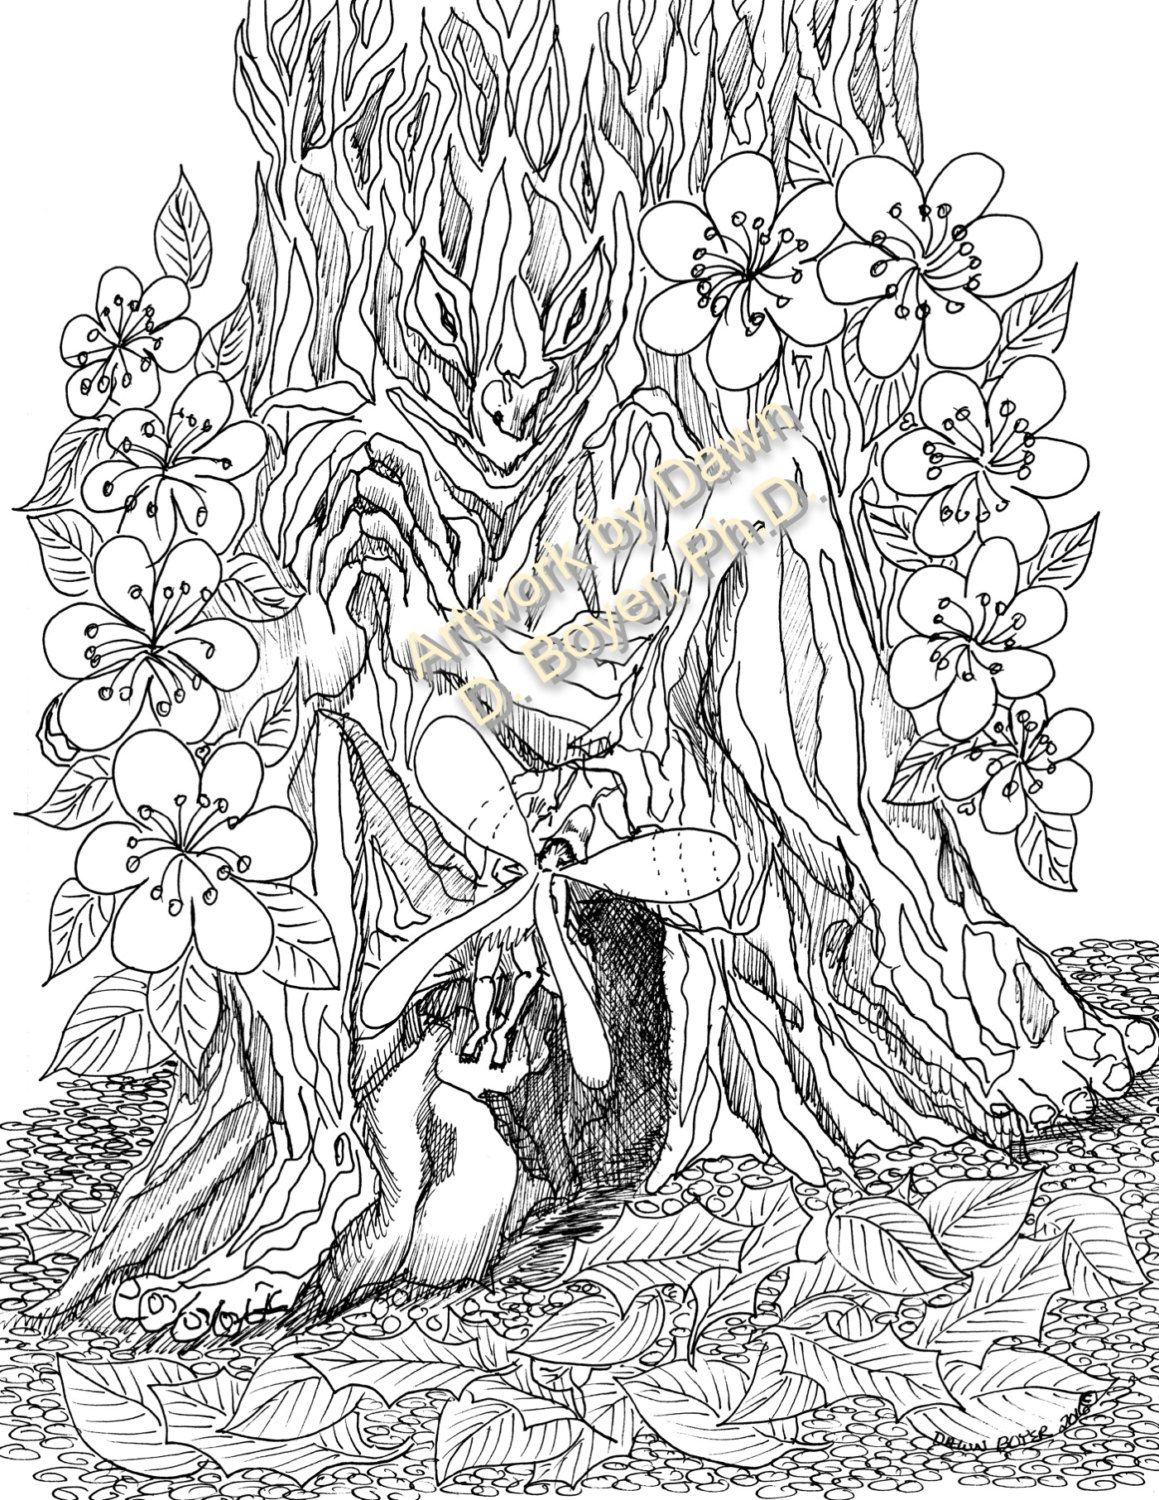 Fairy Houses And Fairy Doors Vol 3 And 4 Individual Coloring Etsy Horse Coloring Pages Coloring Pages Coloring Books [ 1500 x 1159 Pixel ]